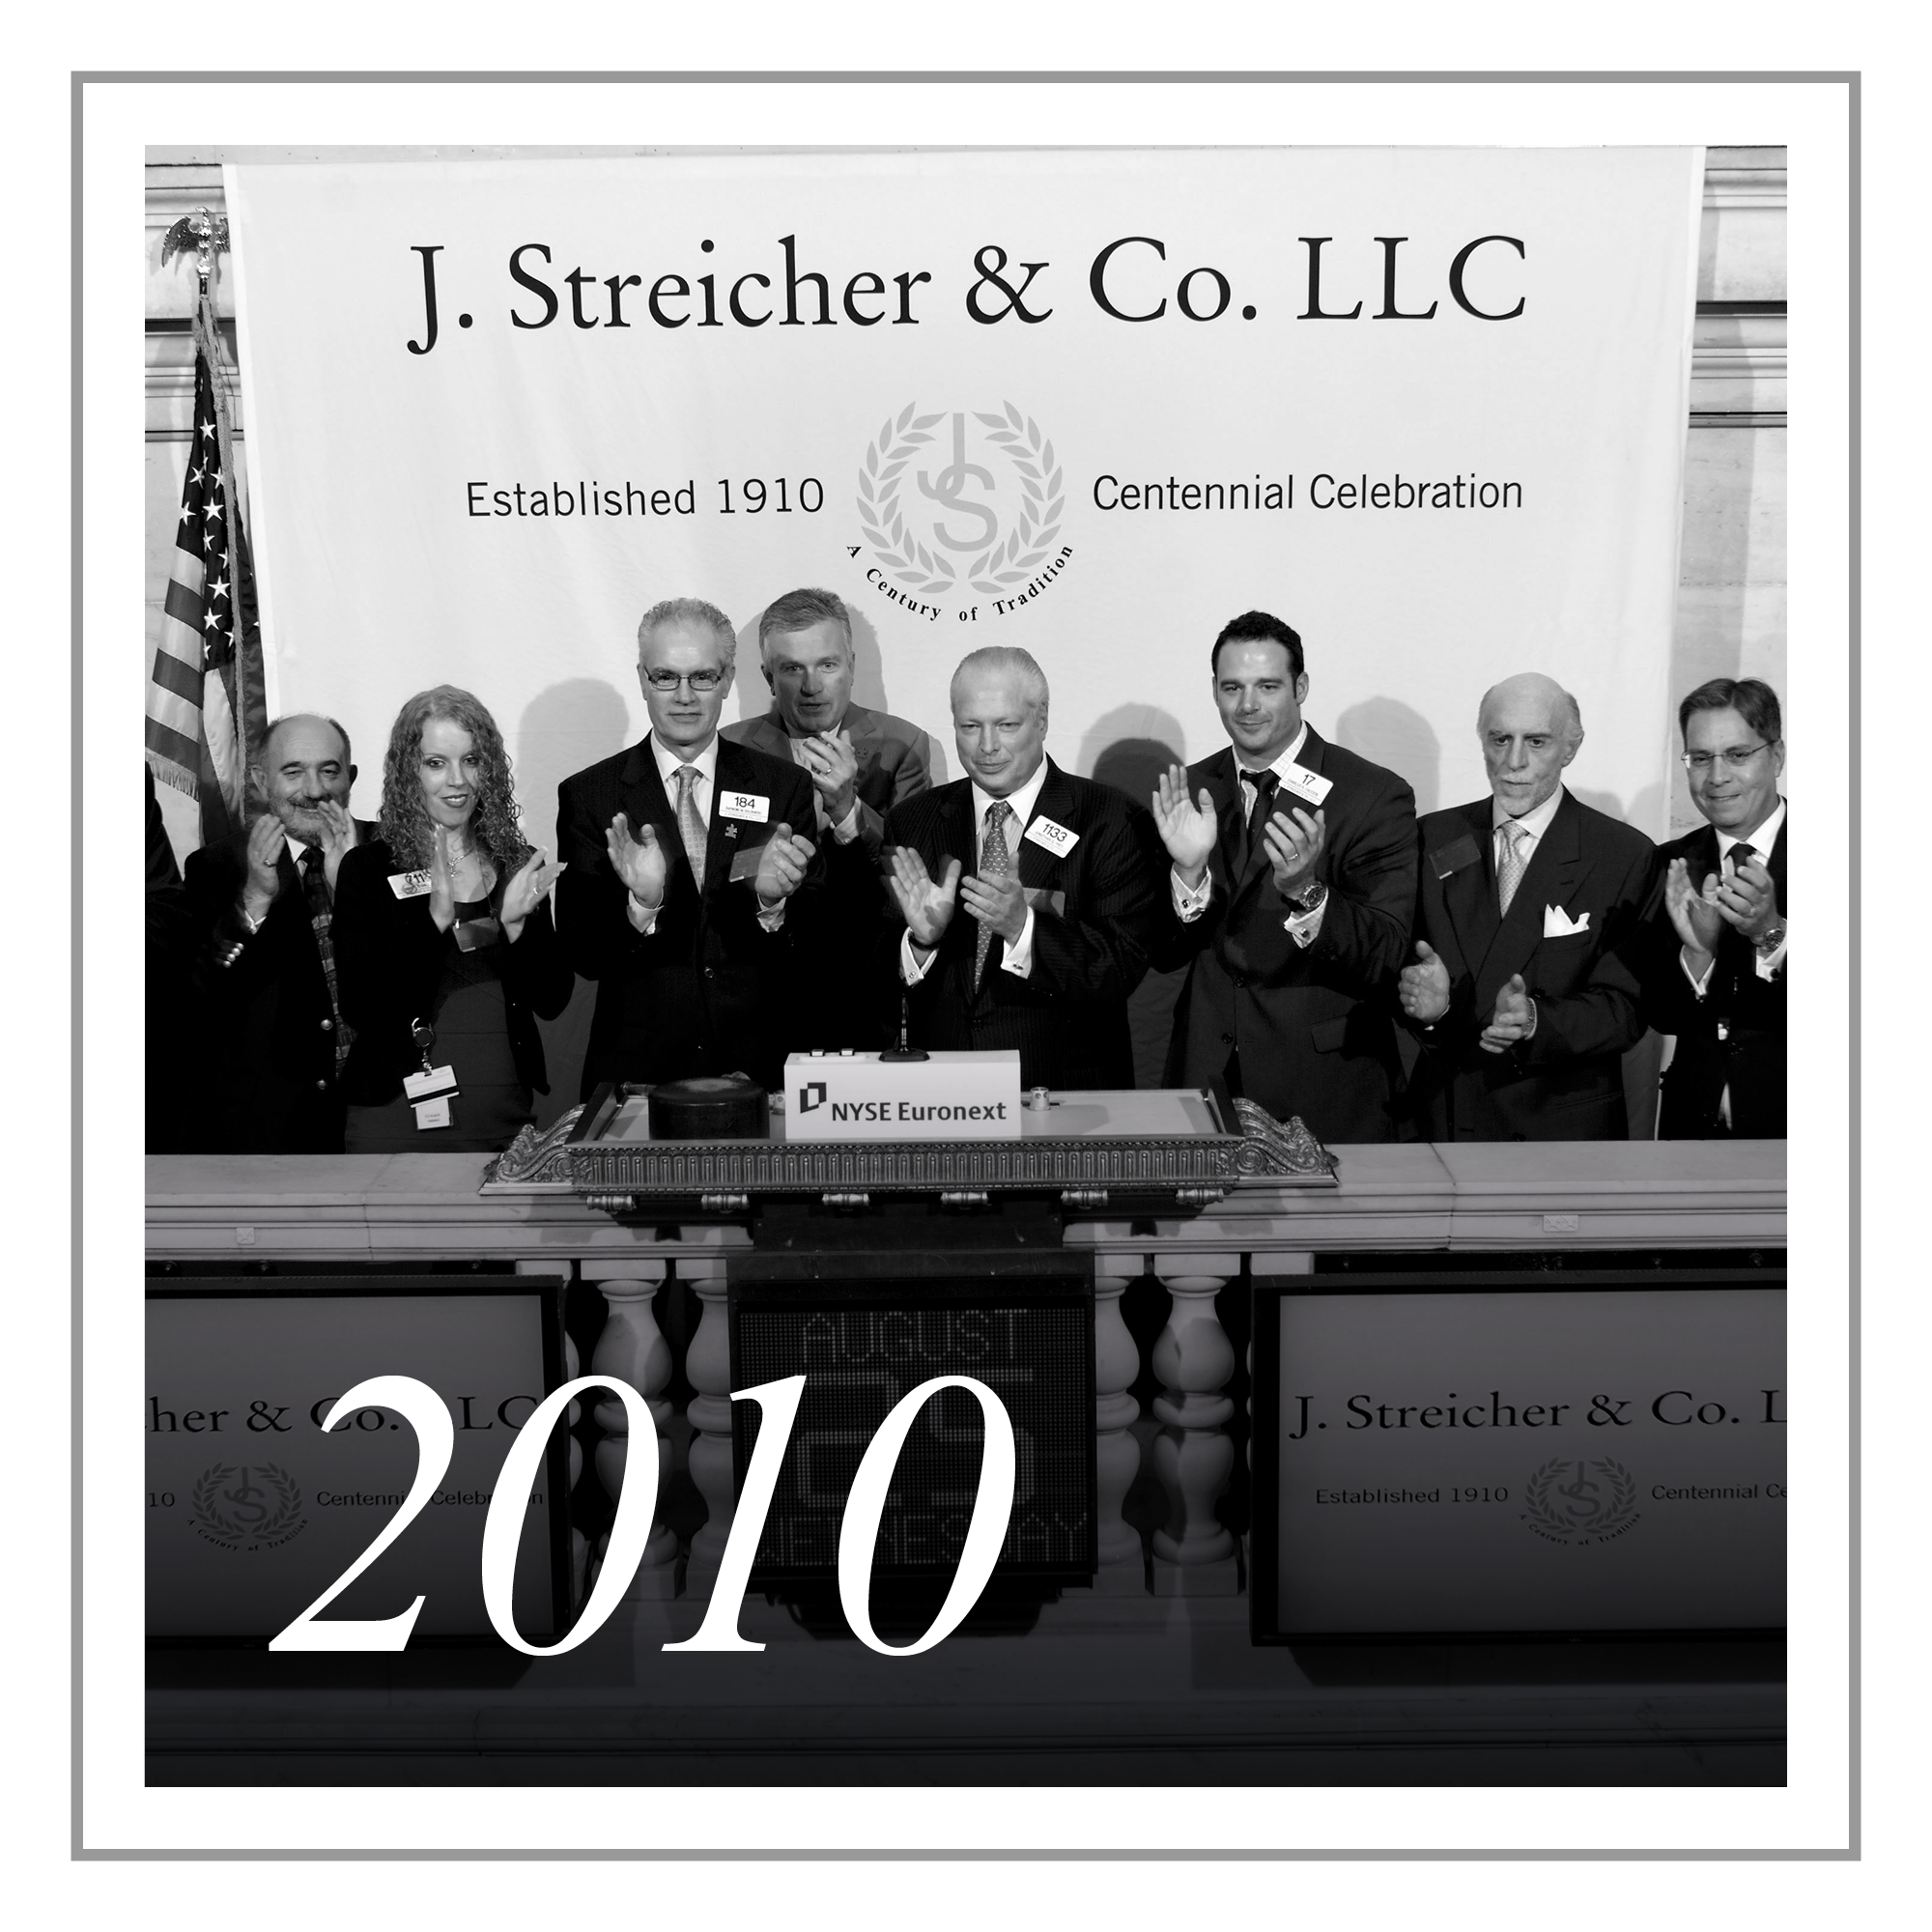 Over a Century of Excellence - The firm has remained a private business to date and as such, no Specialist Unit on the NYSE and few in the industry can look back on a heritage as long and rich as J. Streicher.